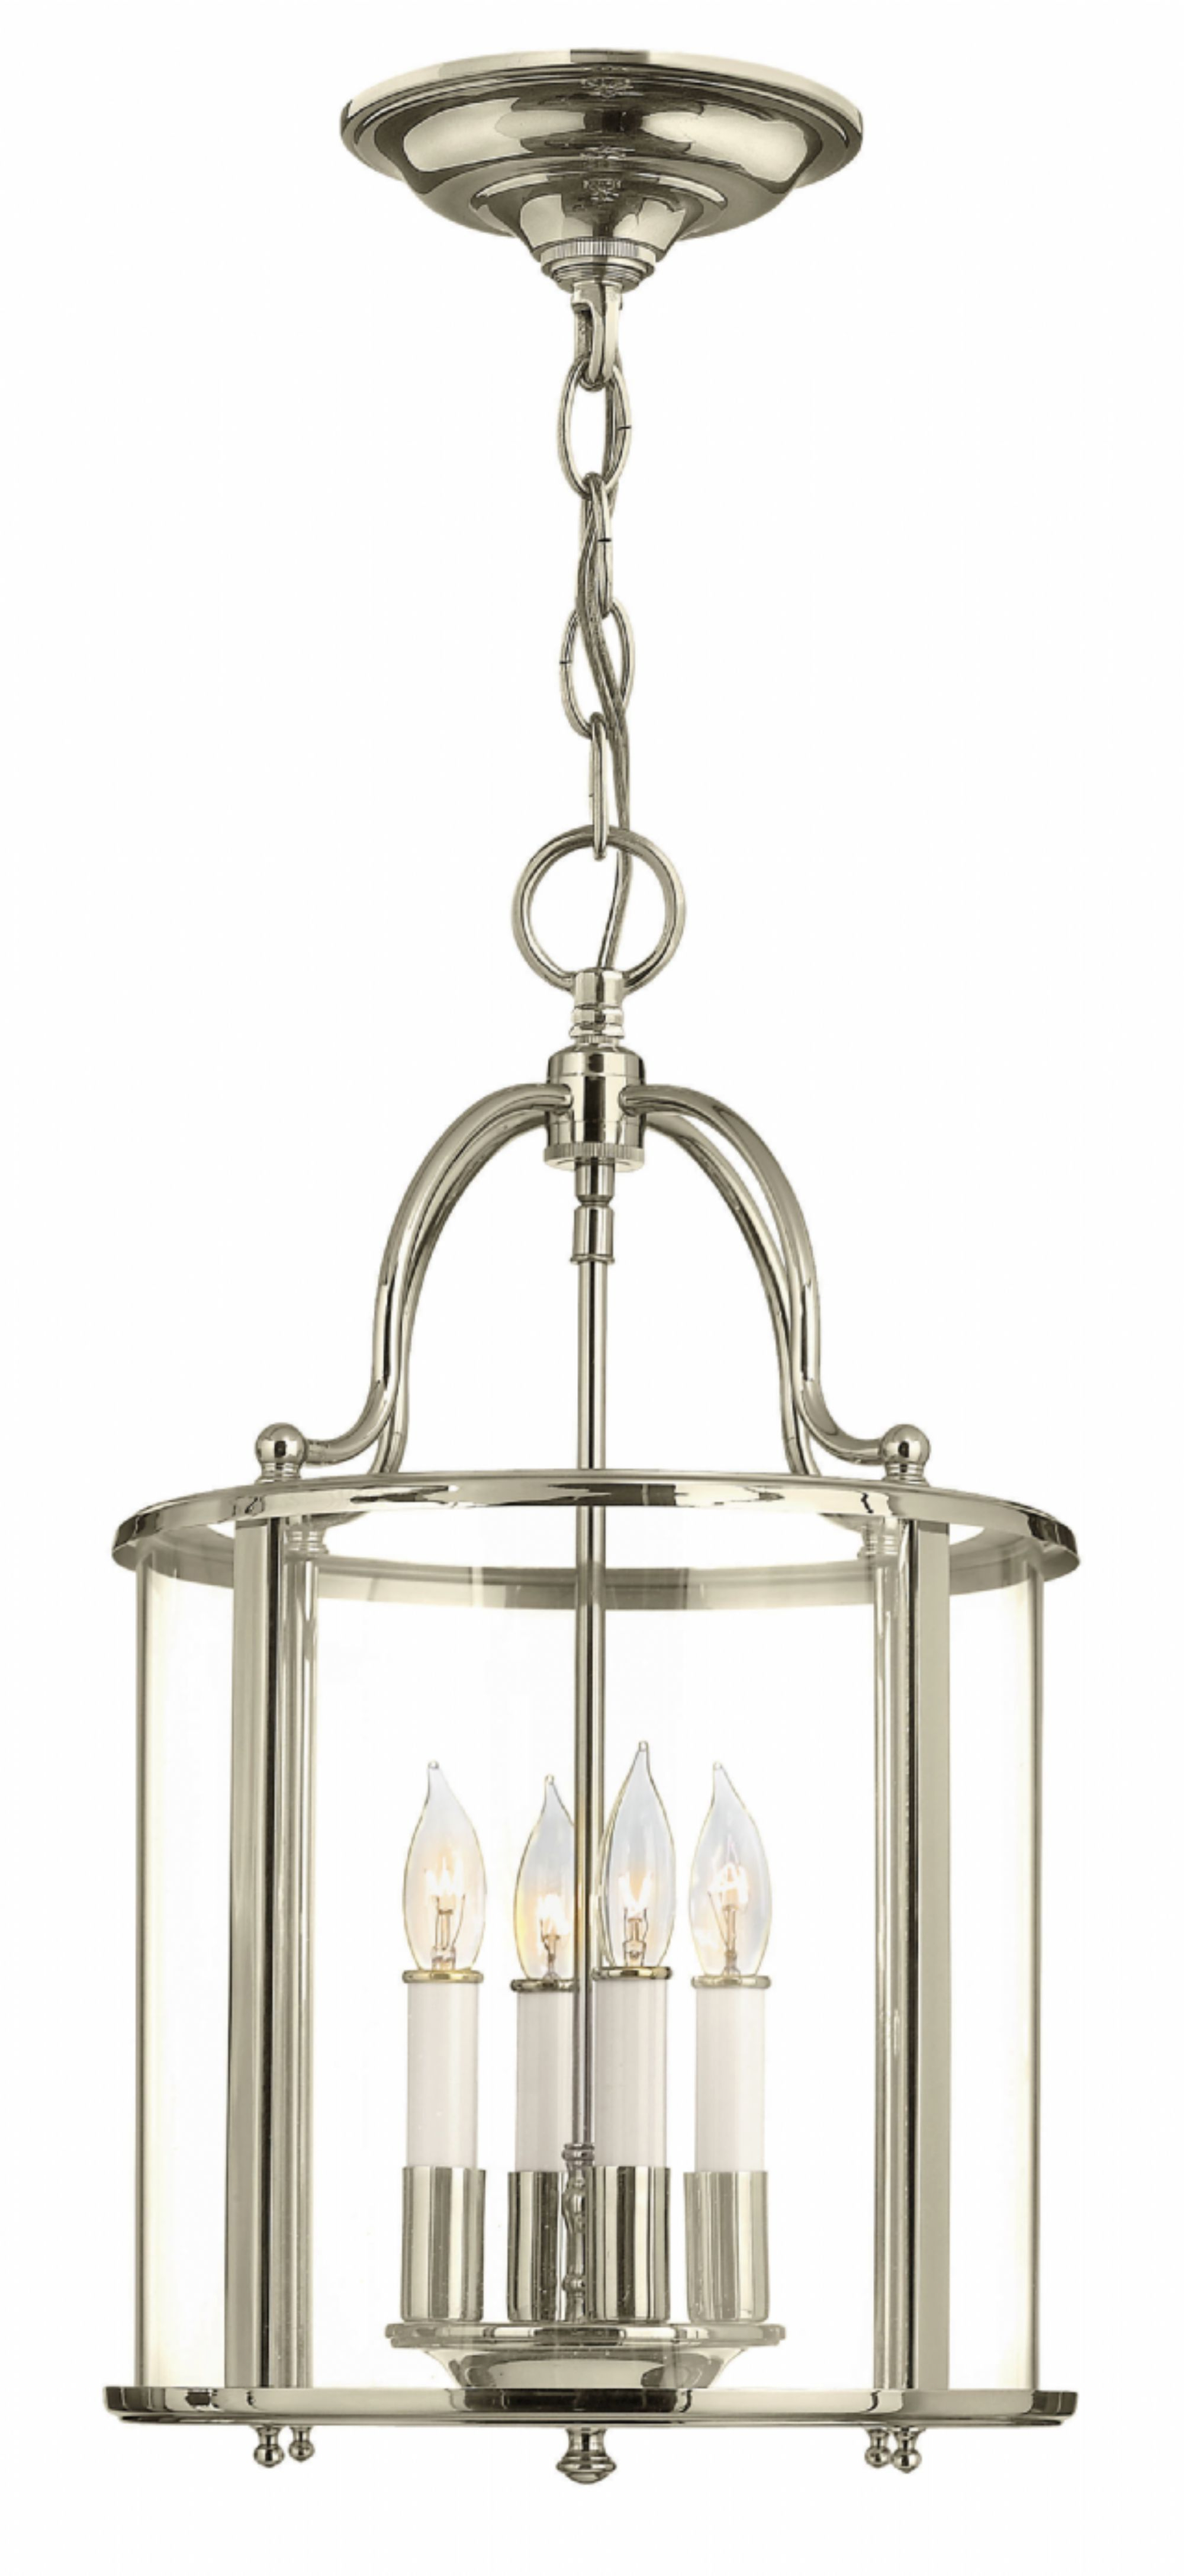 Tessie 3 Light Lantern Cylinder Pendants Within Current Hinkley Lighting – Gentry 3474Pn Comes In Polished Nickel (View 14 of 20)